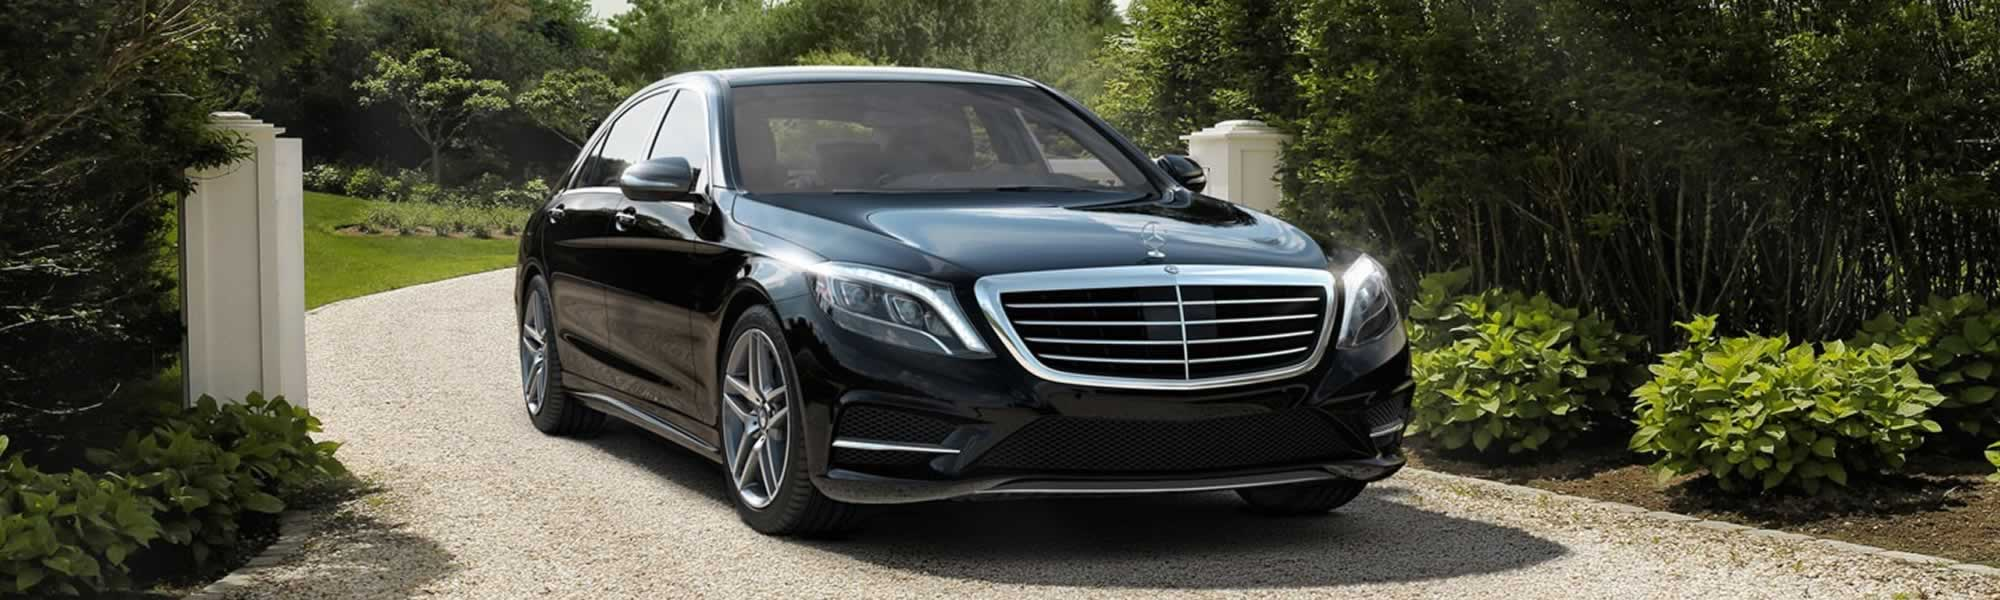 business car hire and limo hire London